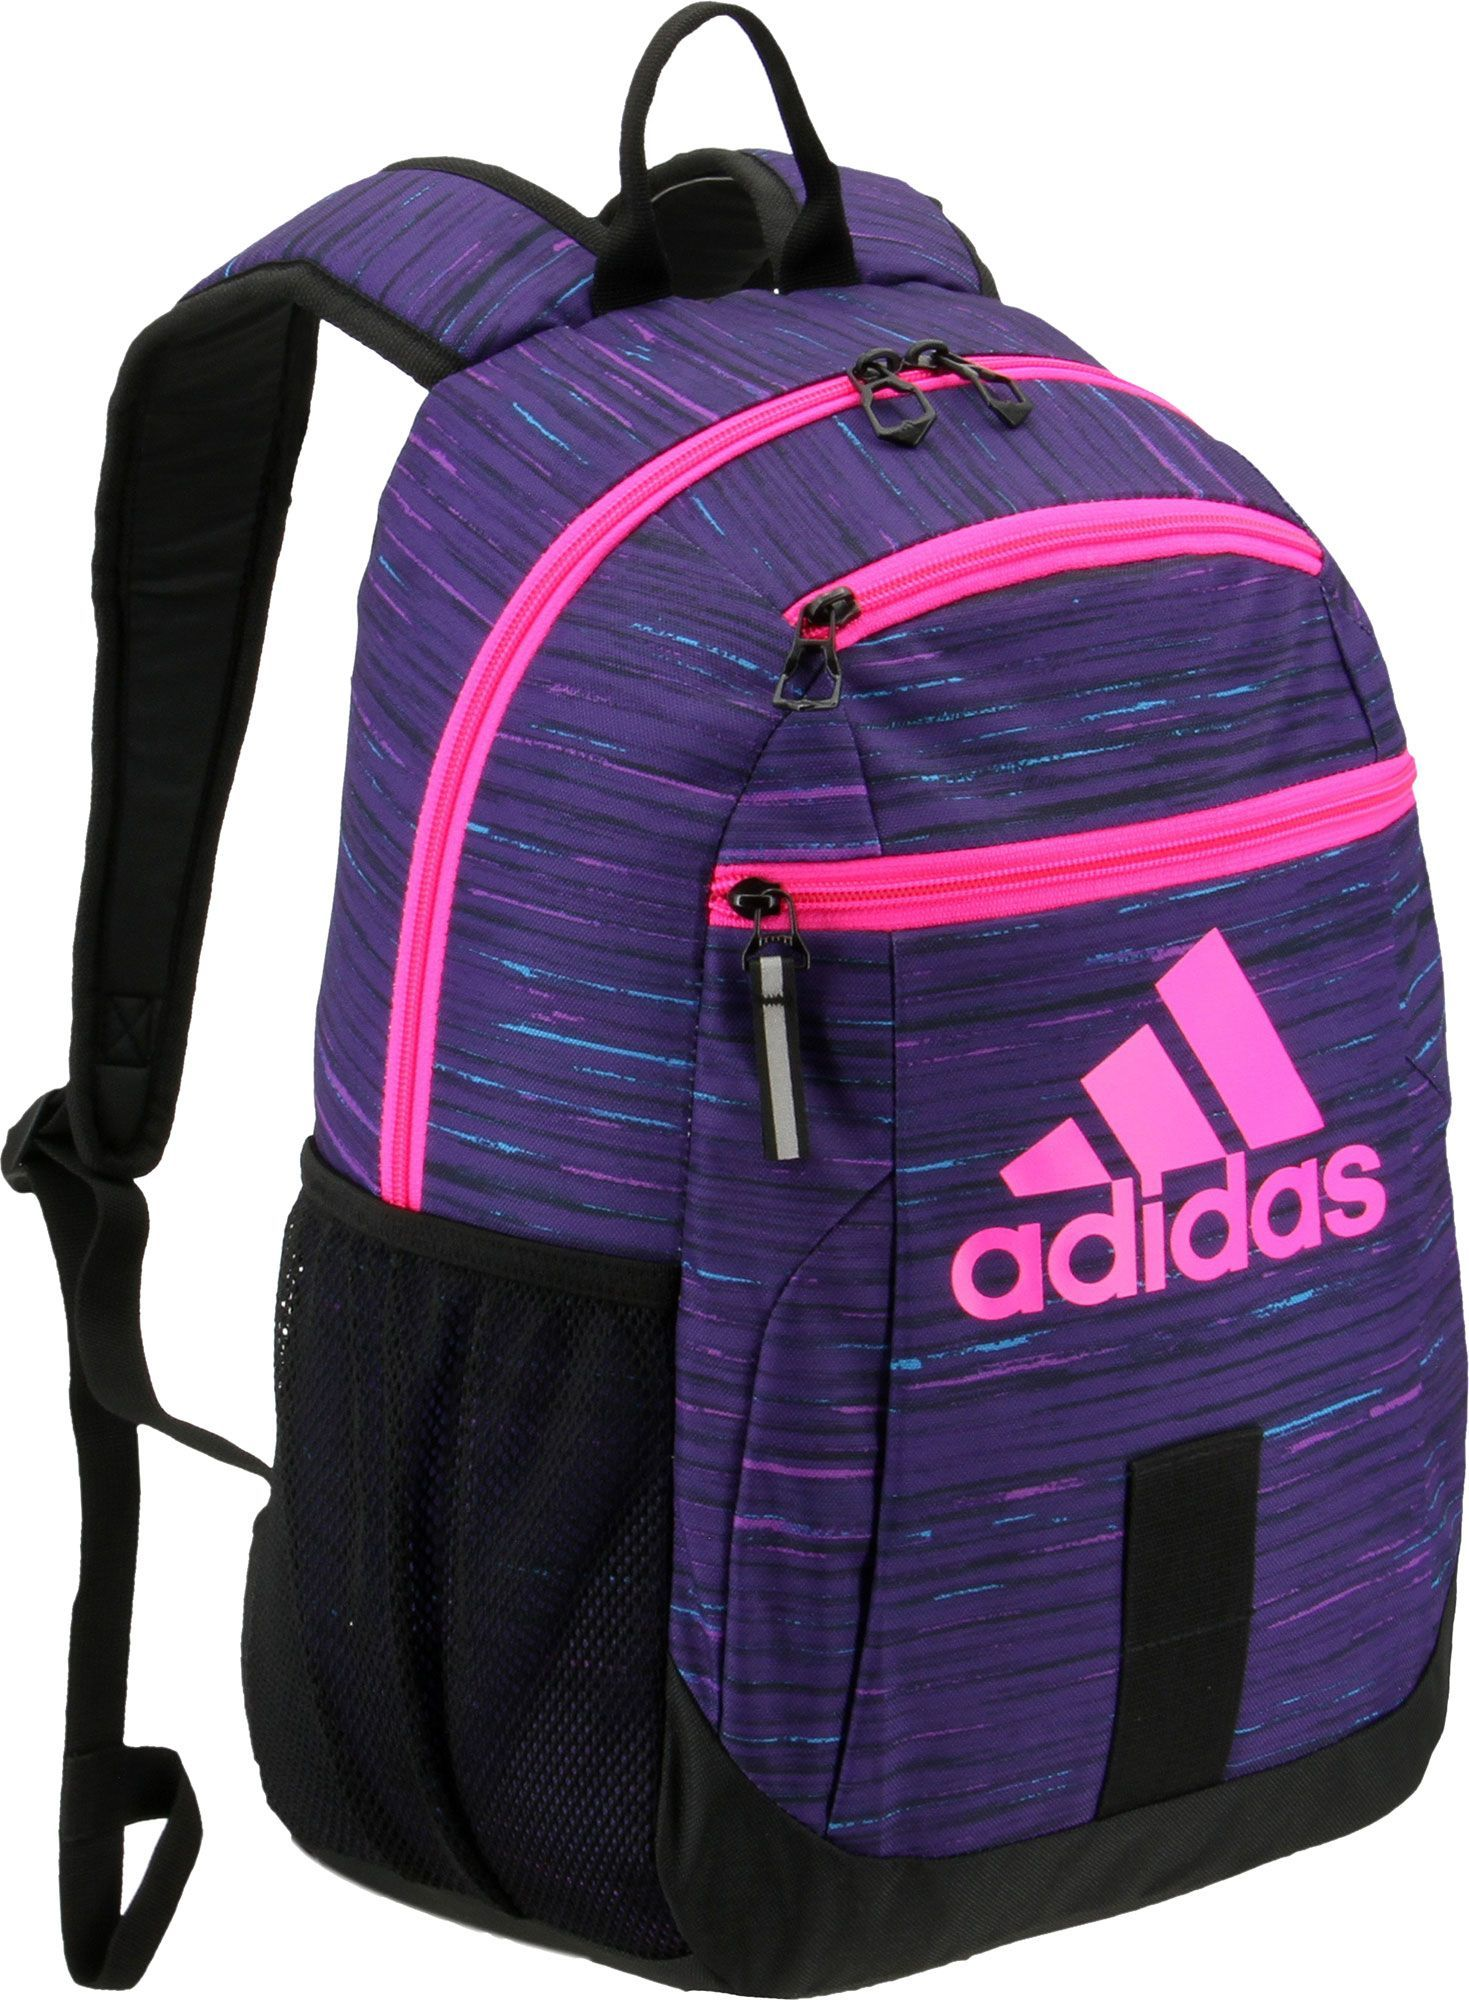 adidas Youth Young Creator Backpack in 2019  2ec209b64a8ed